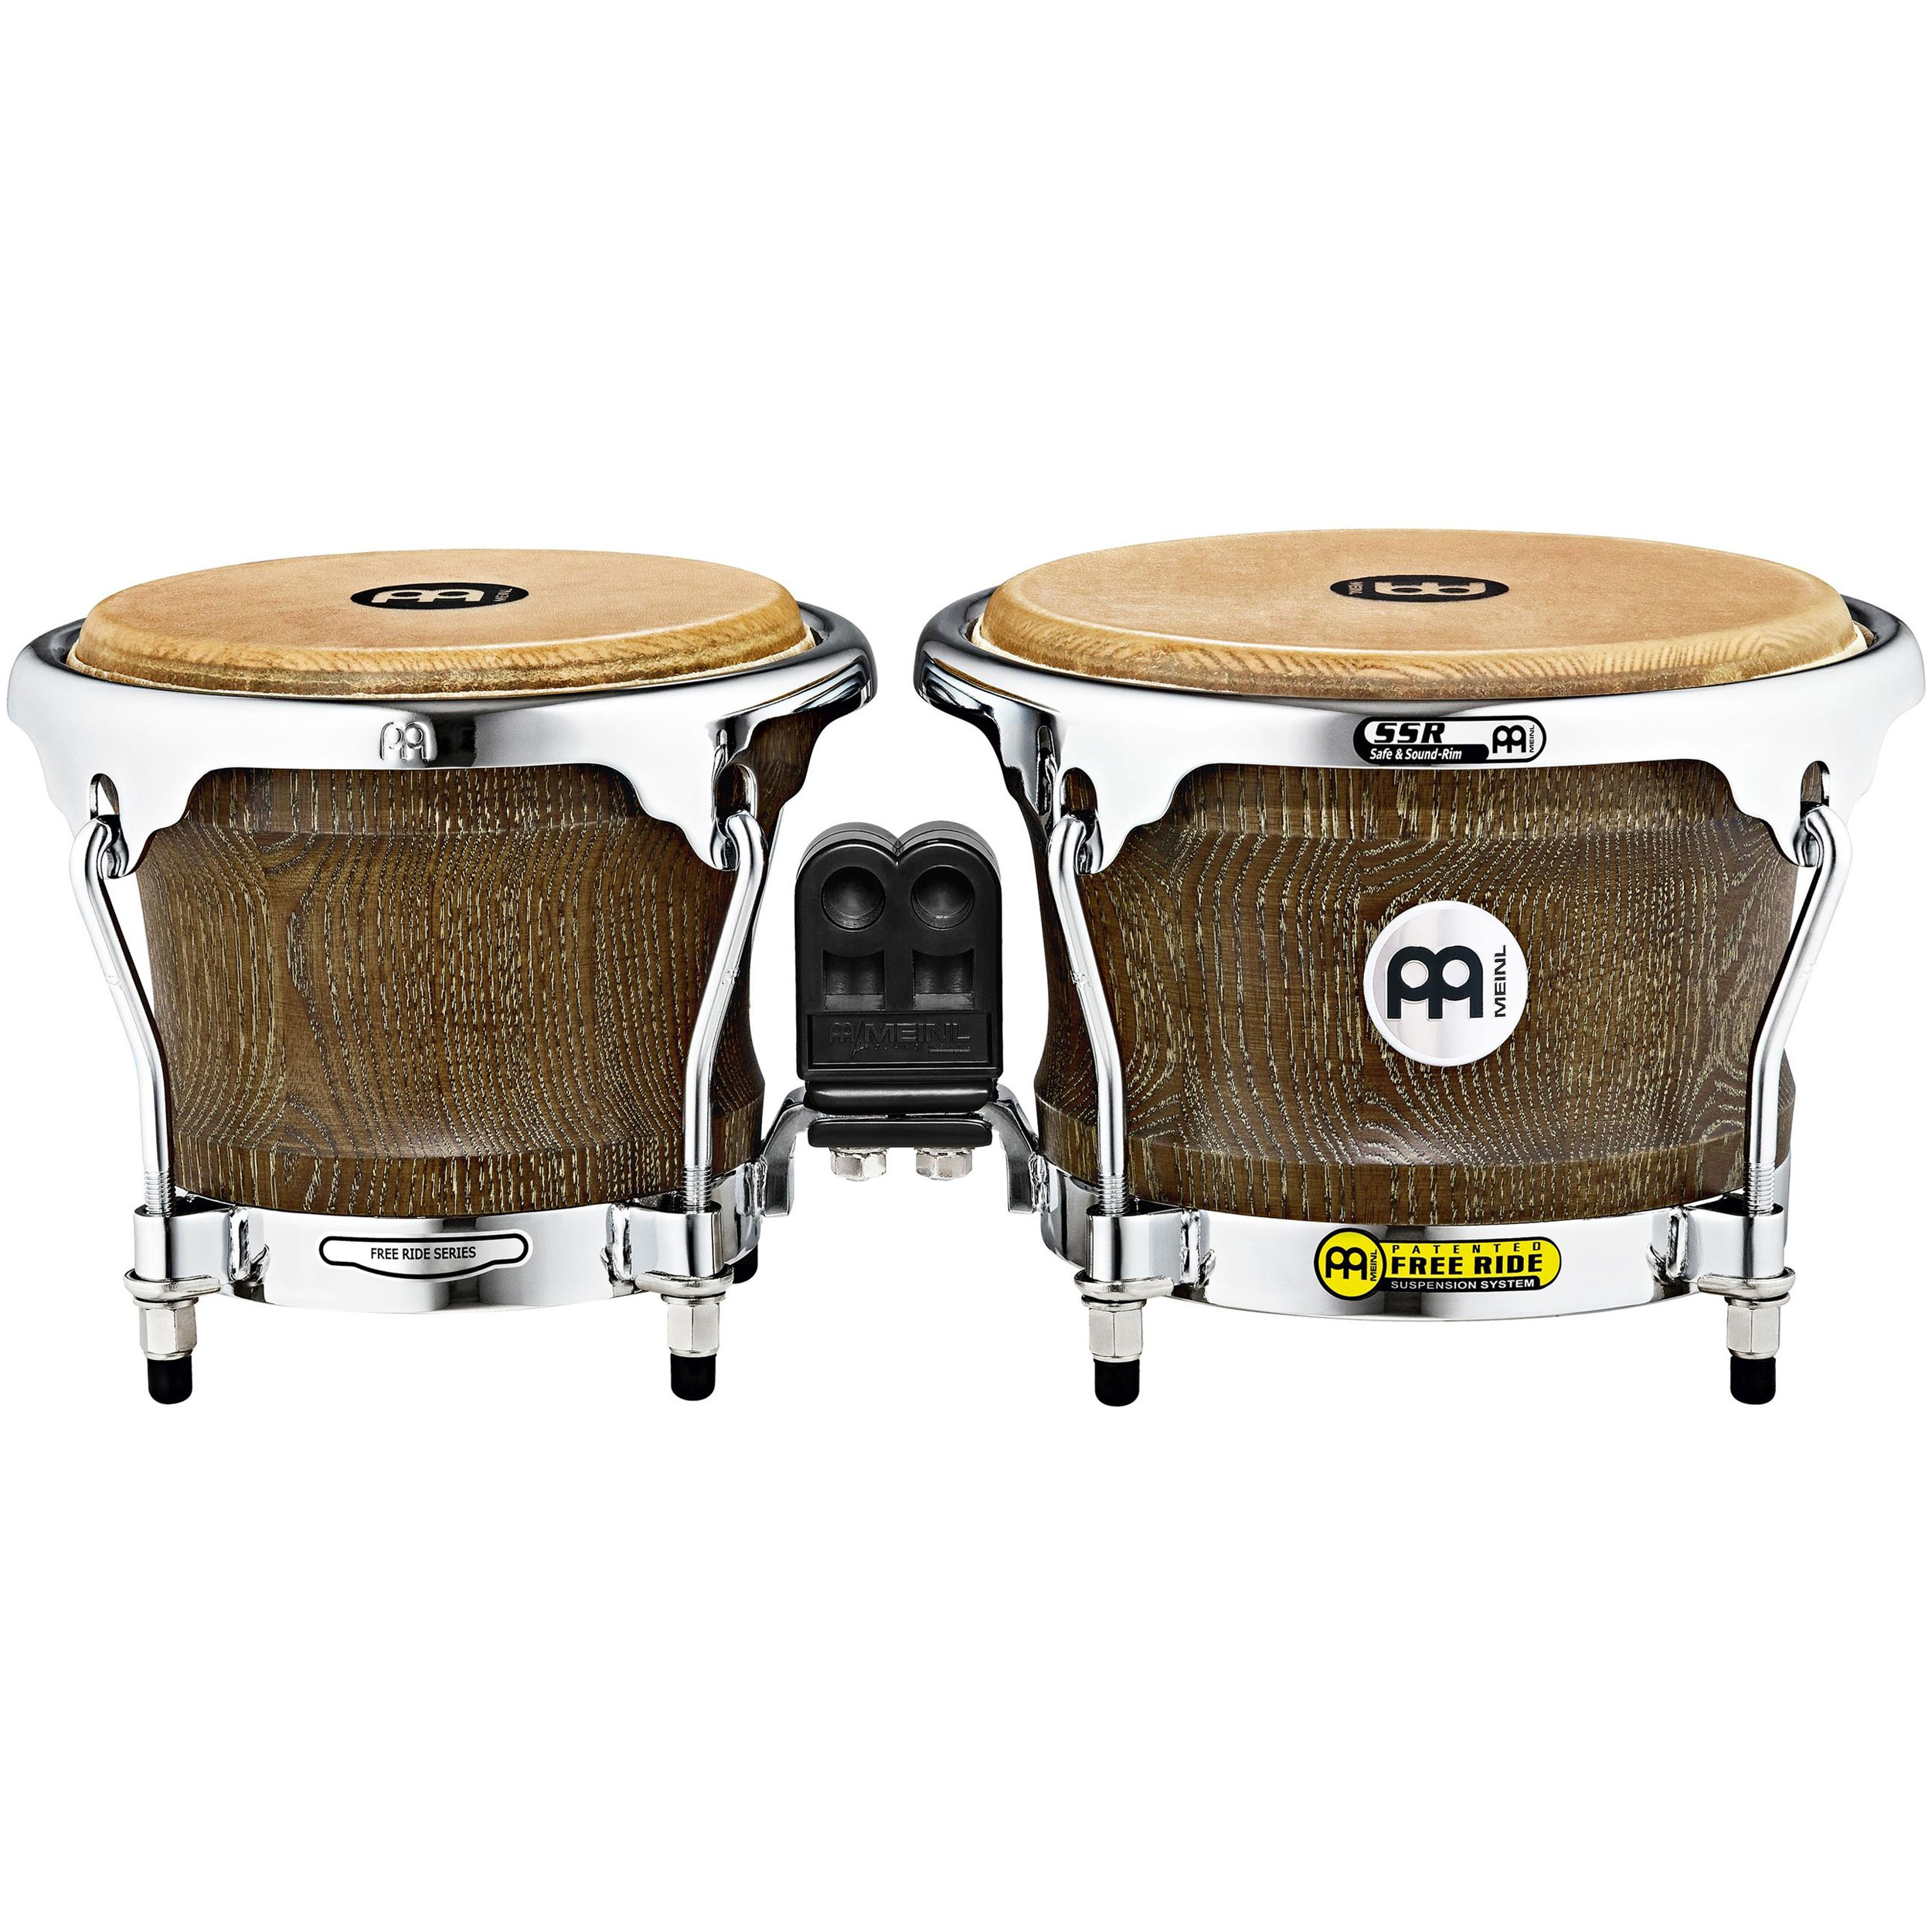 "Meinl 7"" & 8.5"" Woodcraft Series Bongos in Vintage Brown"